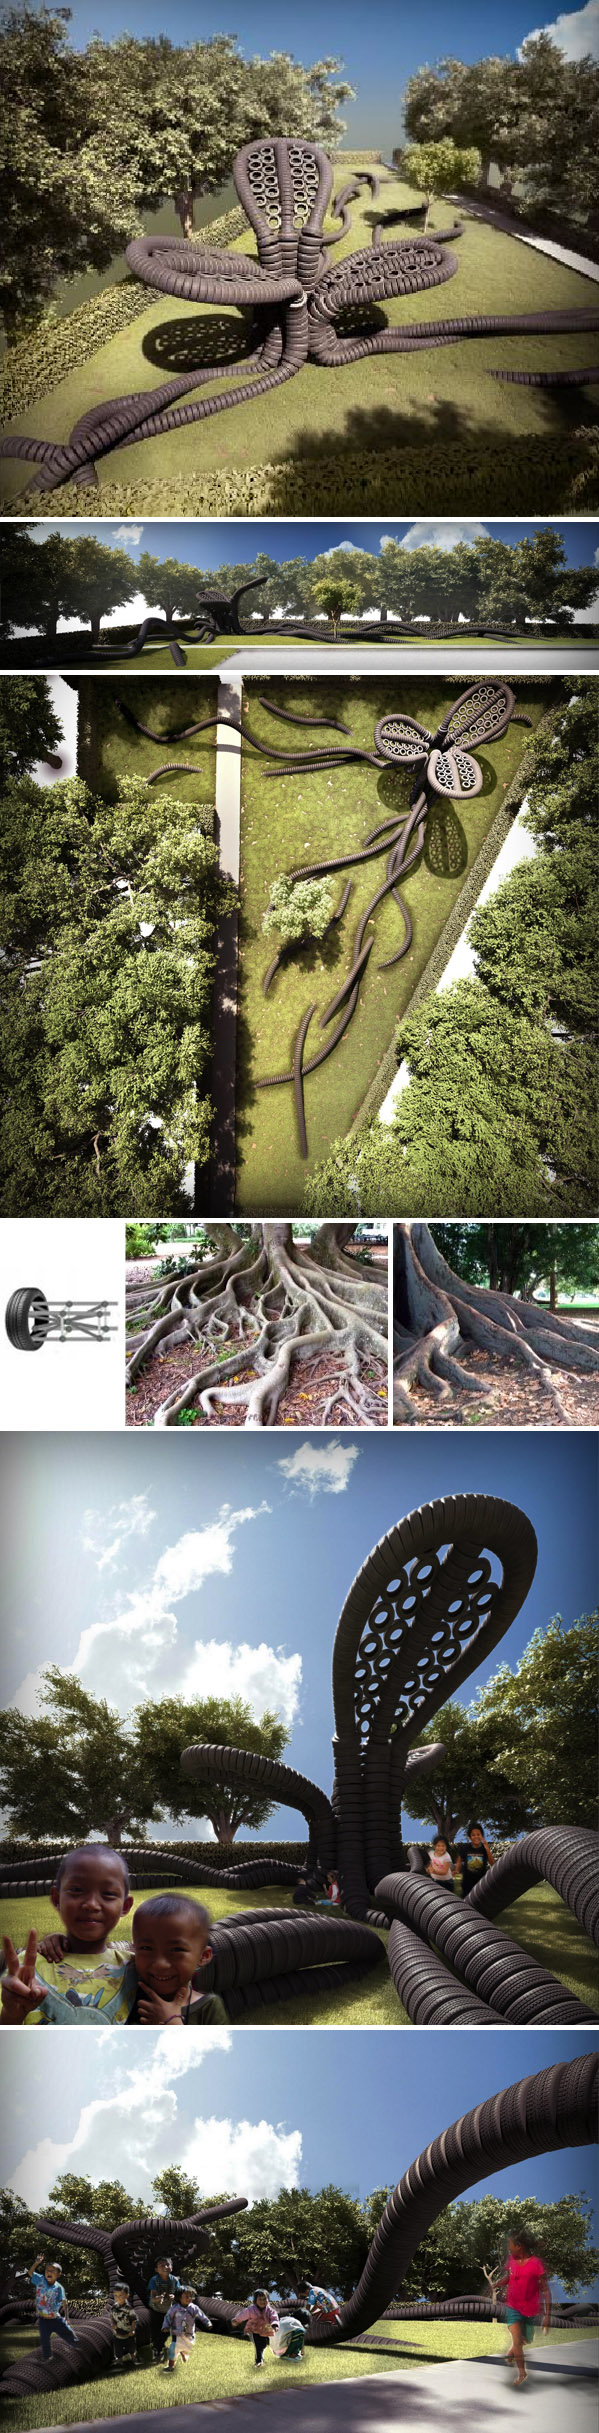 Tire Installation, playground, Thailand, Tree sculpture, refugees